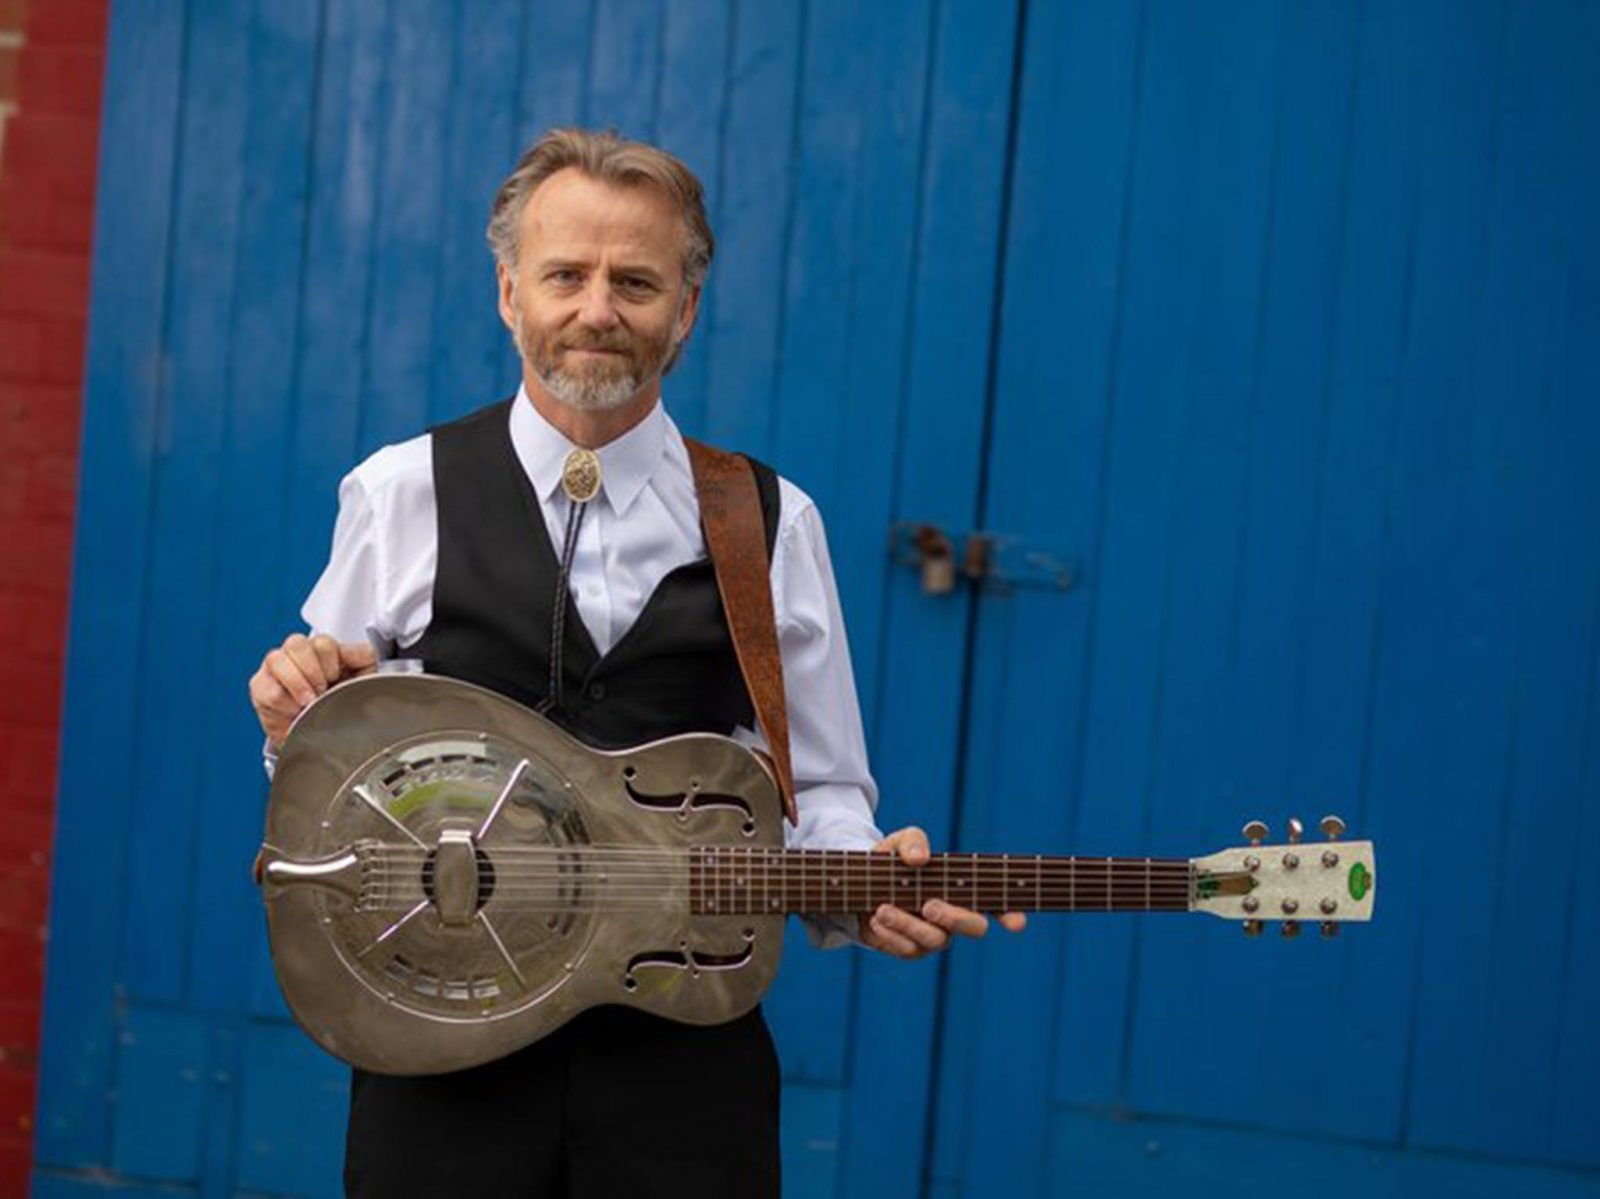 Geoff Achison standing in front of a blue door holding a dobbero guitar